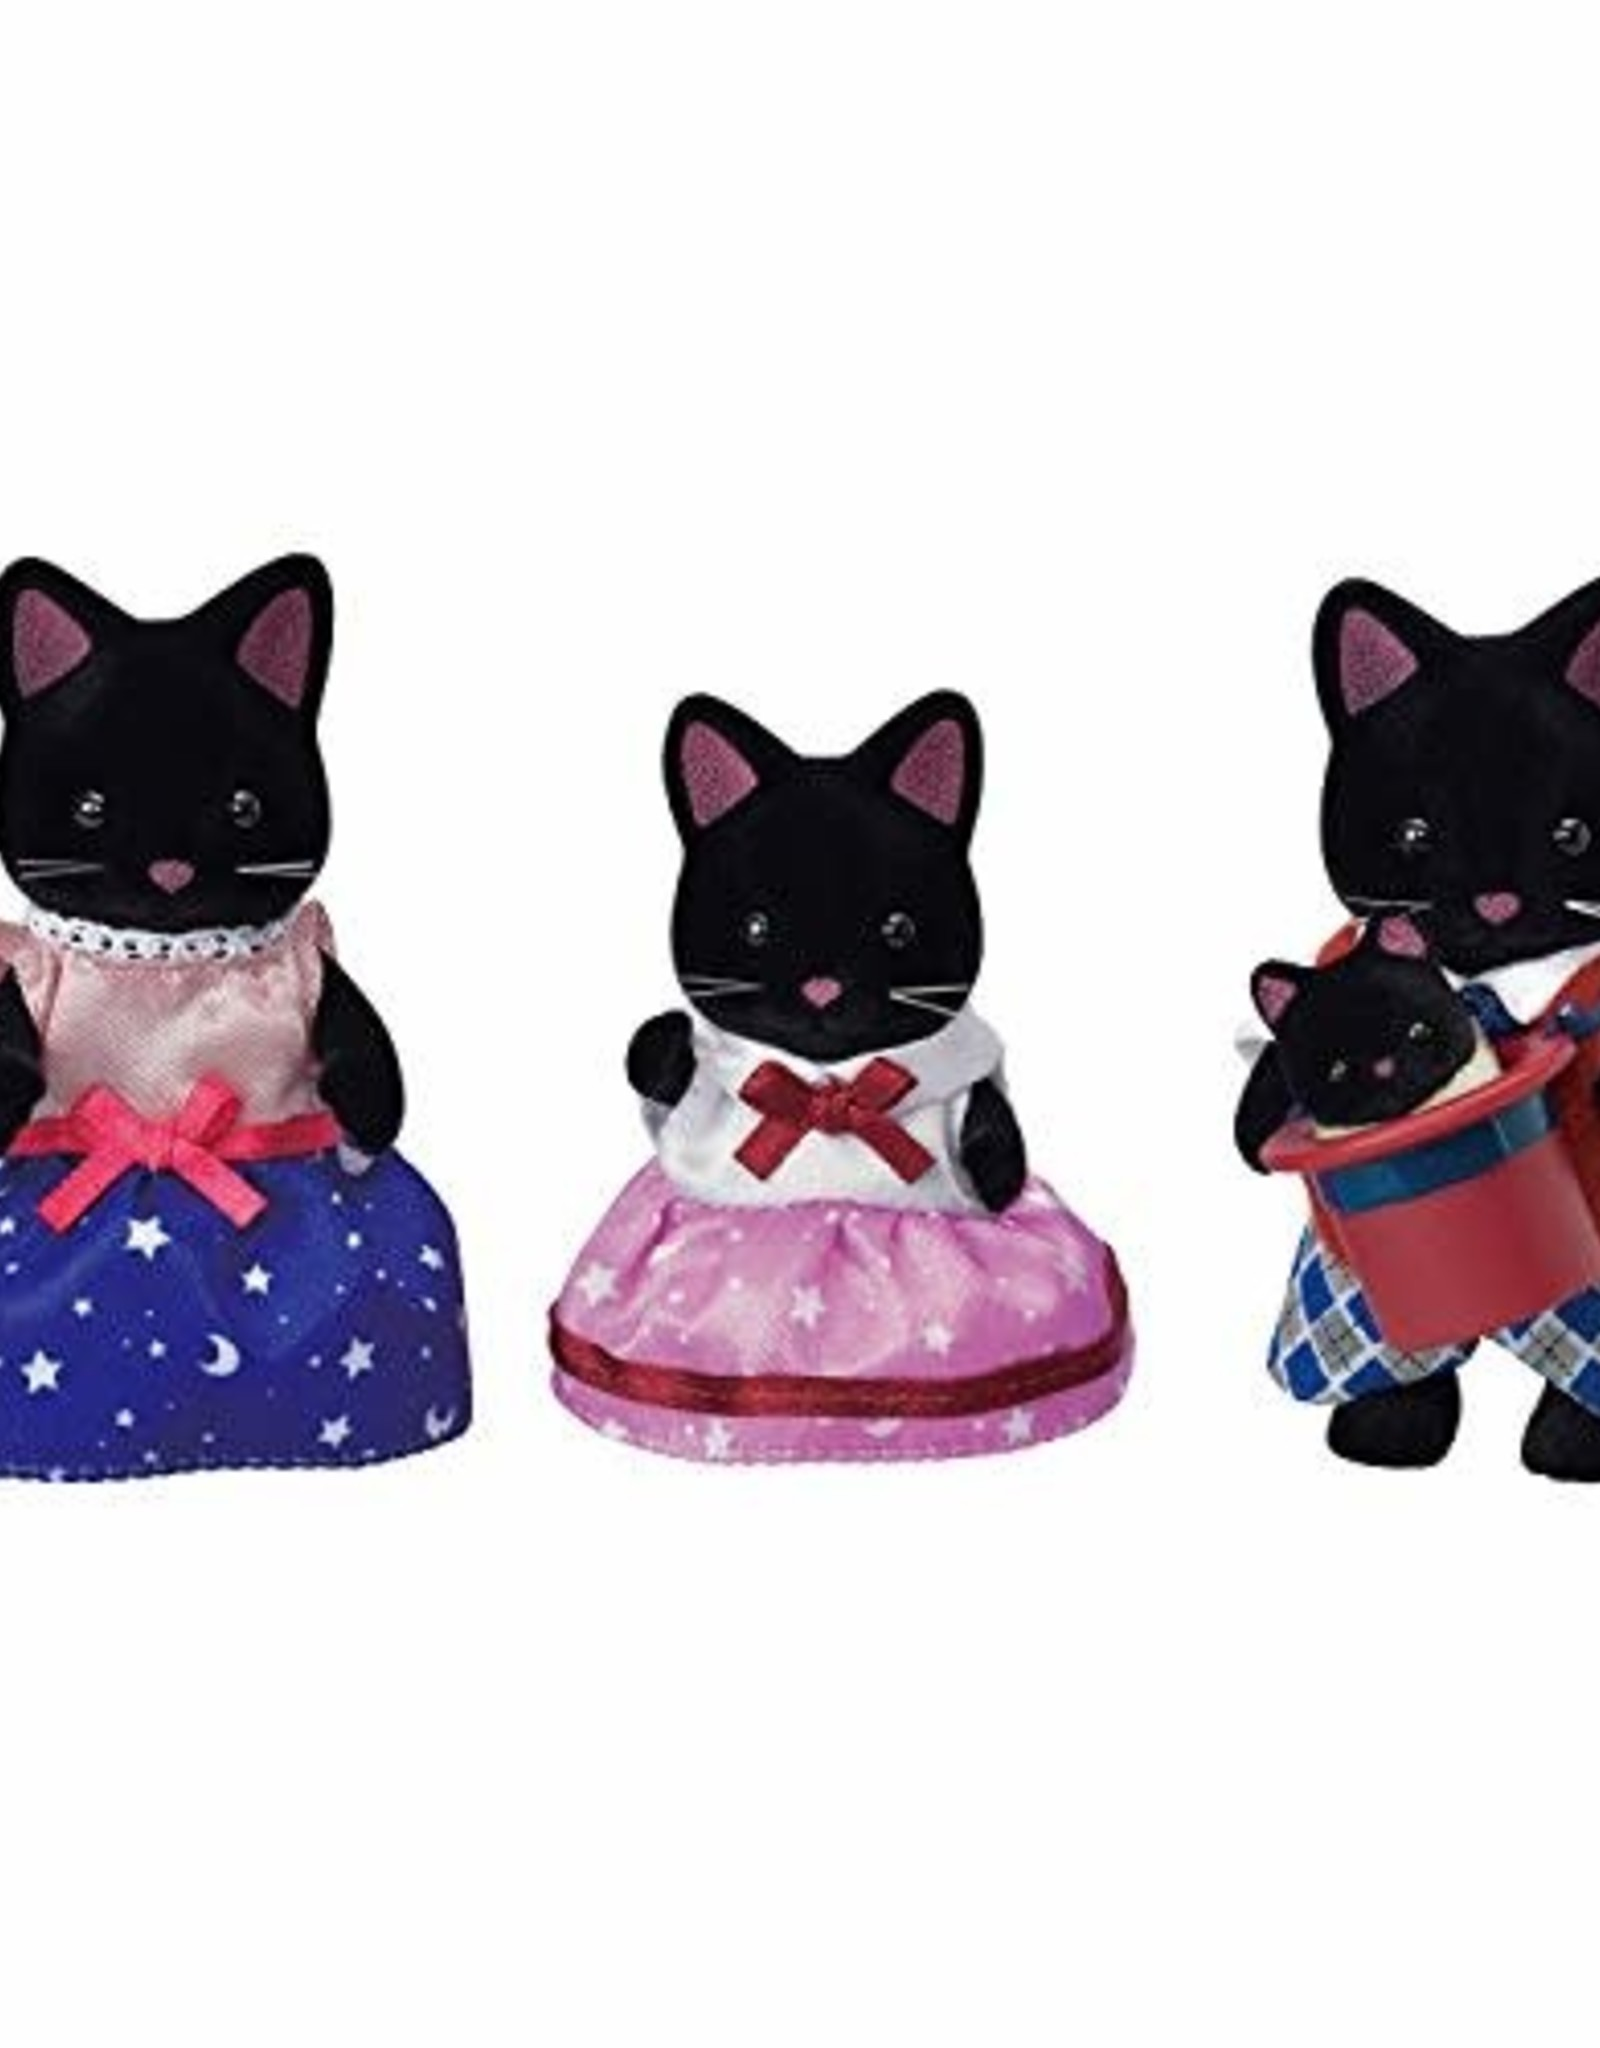 Calico Critters: Midnight Cat Family